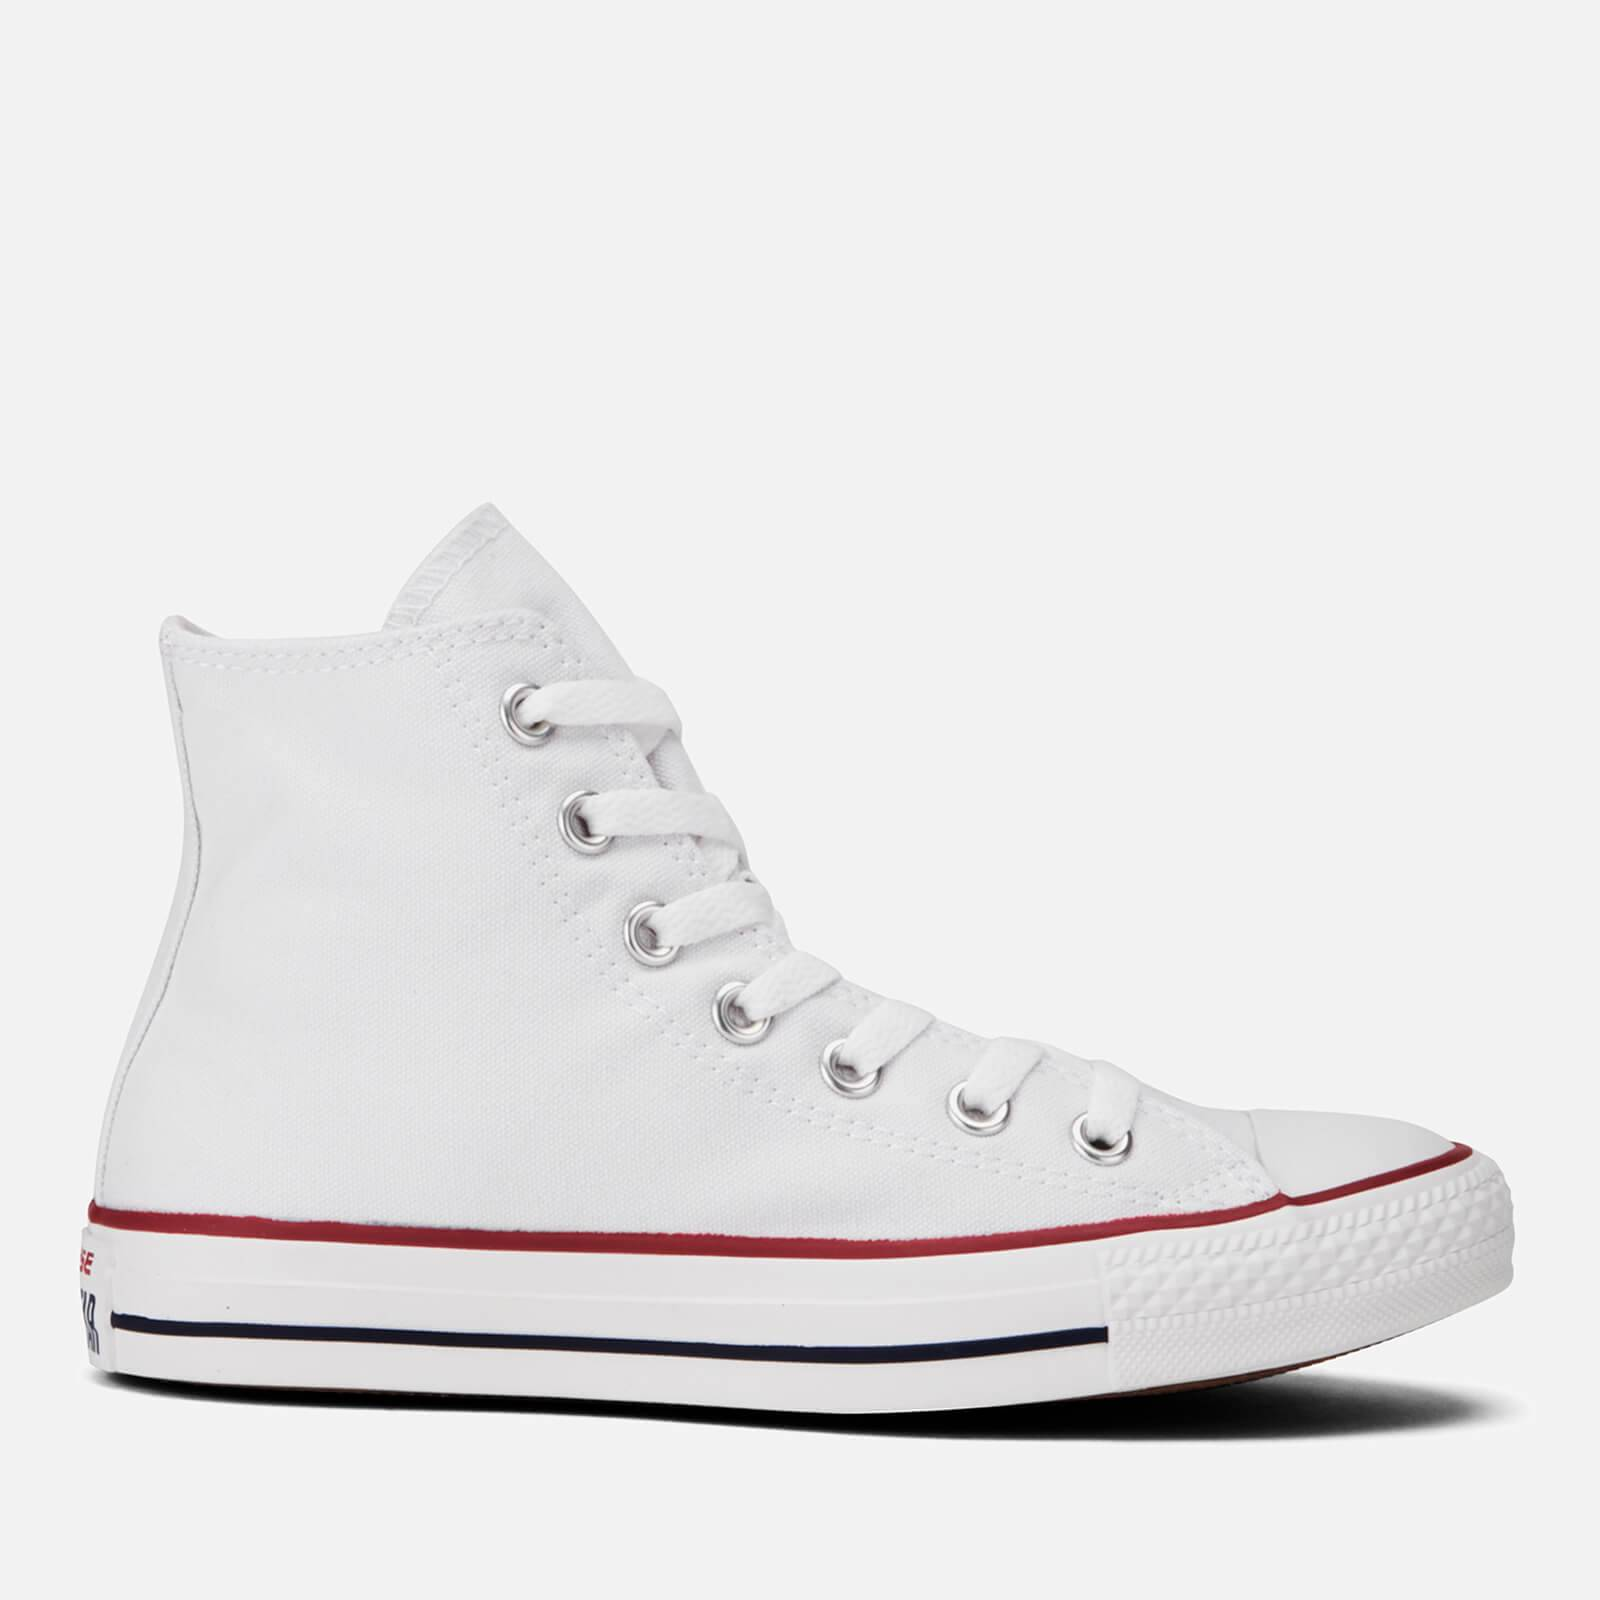 Converse Chuck Taylor All Star Canvas Hi-Top Trainers - Optical White - UK 5